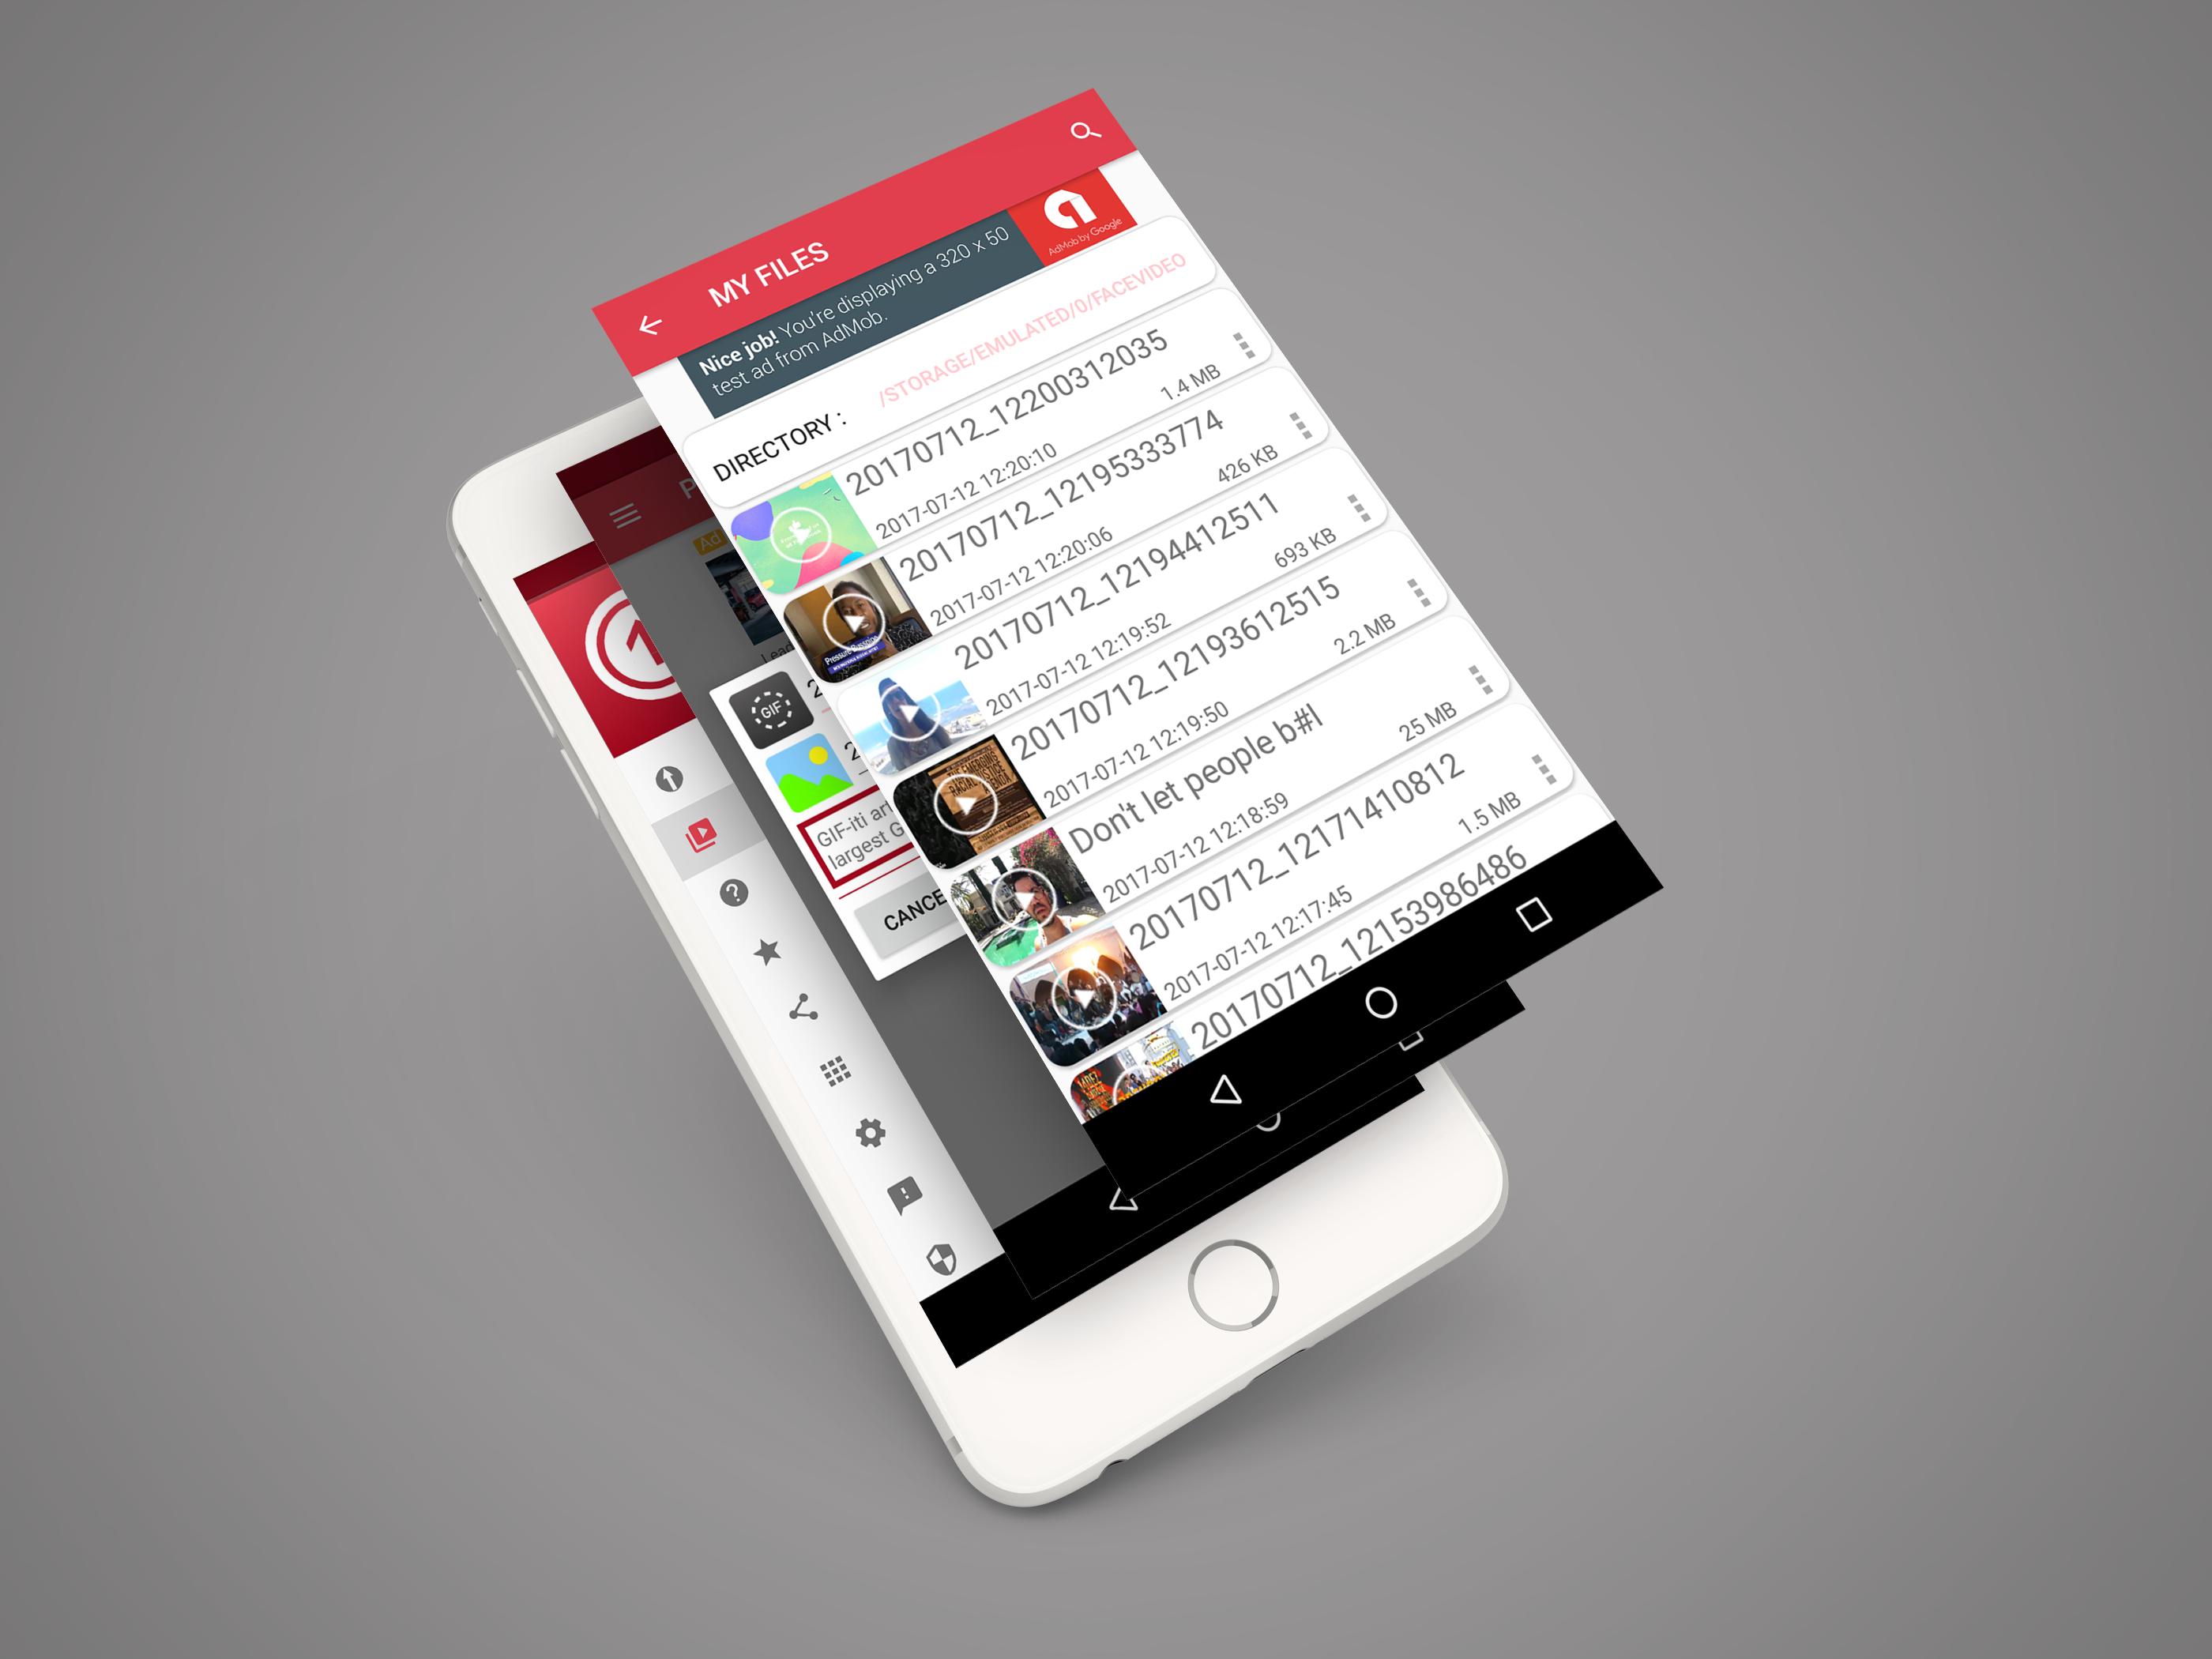 Pinterest downloader photo & image with native ads - 1